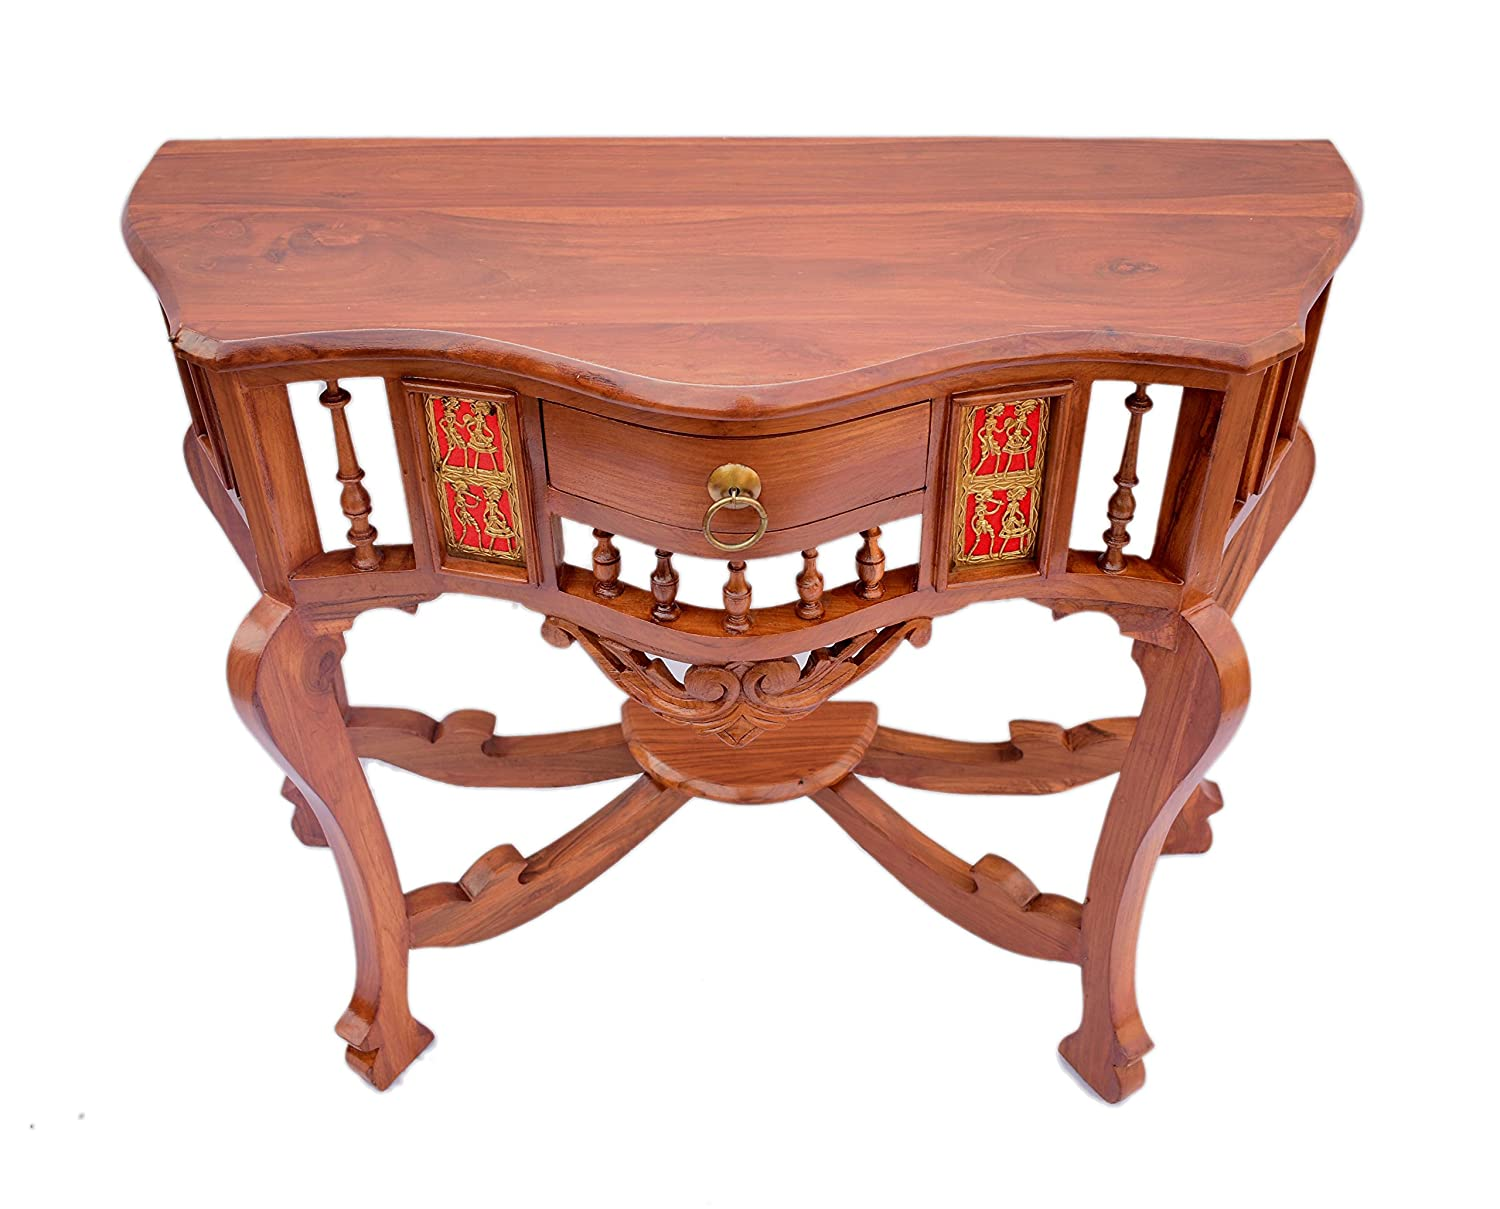 Teak Wood Antique and Royal Look Console Table with Beautiful Dhokra and Warli Art. Size : 30x36x15 (HxWxD)